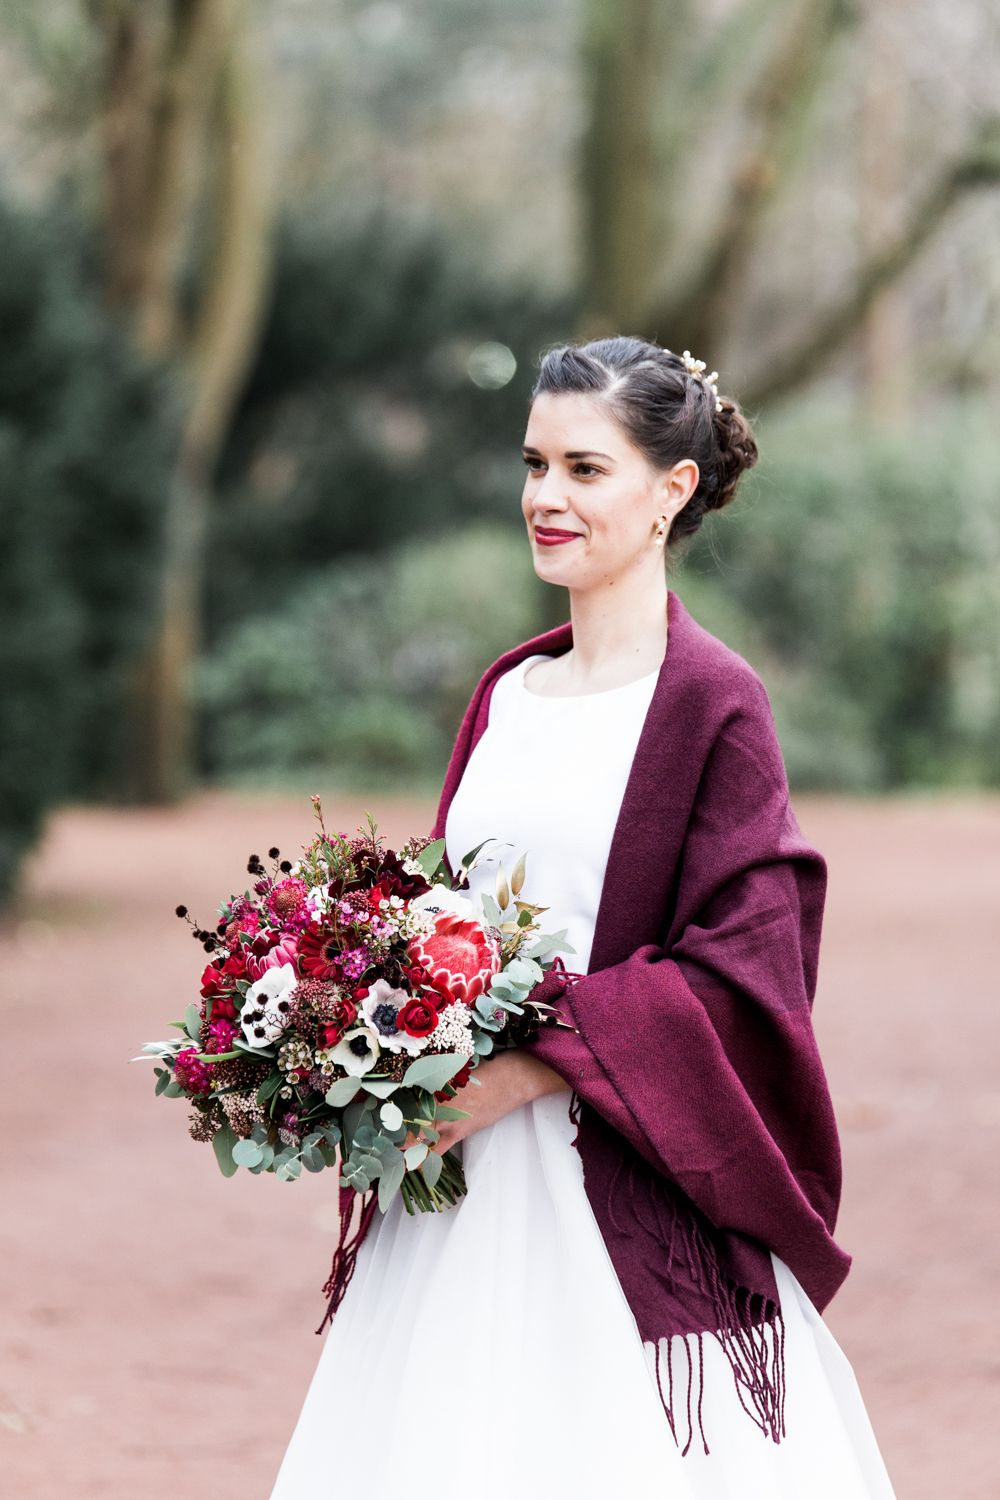 Rustikale Winterhochzeit in Rot | Hochzeitsblog The Little Wedding Corner #bridalflowerbouquets